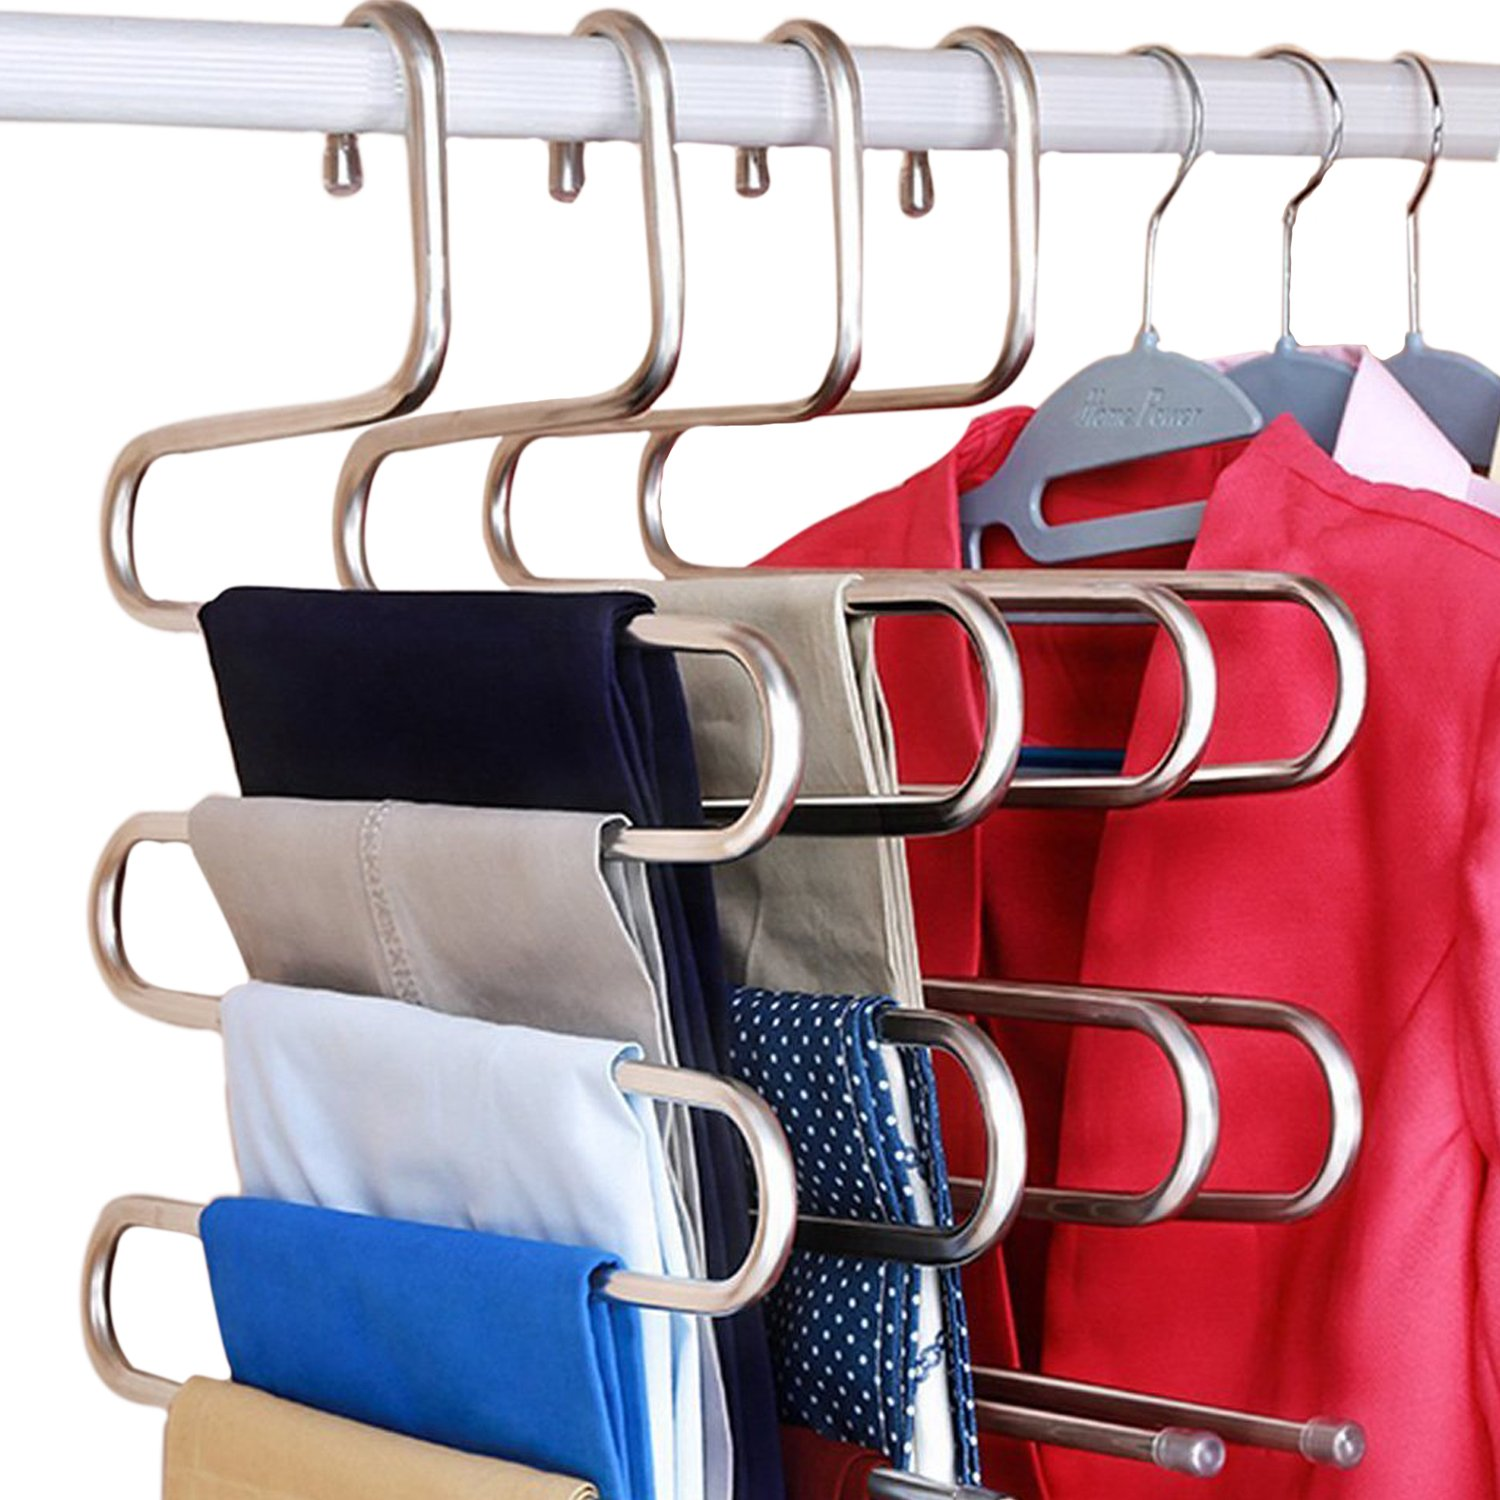 DOIOWN S-Type Stainless Steel Clothes Pants Hangers Closet Storage Organizer for Pants Jeans Scarf Hanging (14.17 x 14.96ins, Set of 3) (3-Pieces) by DOIOWN